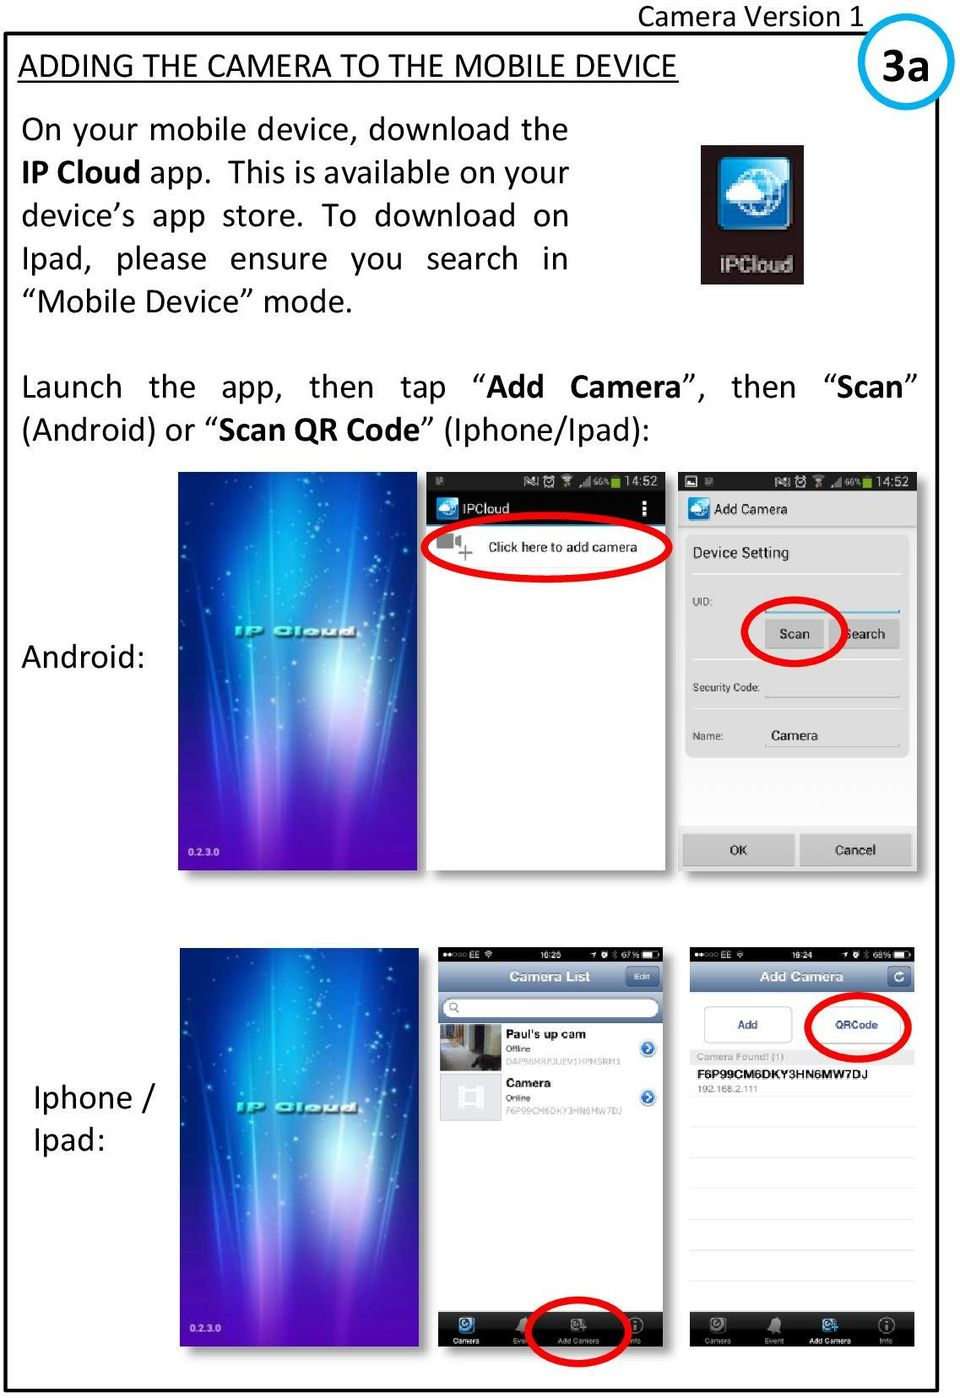 To download on Ipad, please ensure you search in Mobile Device mode.